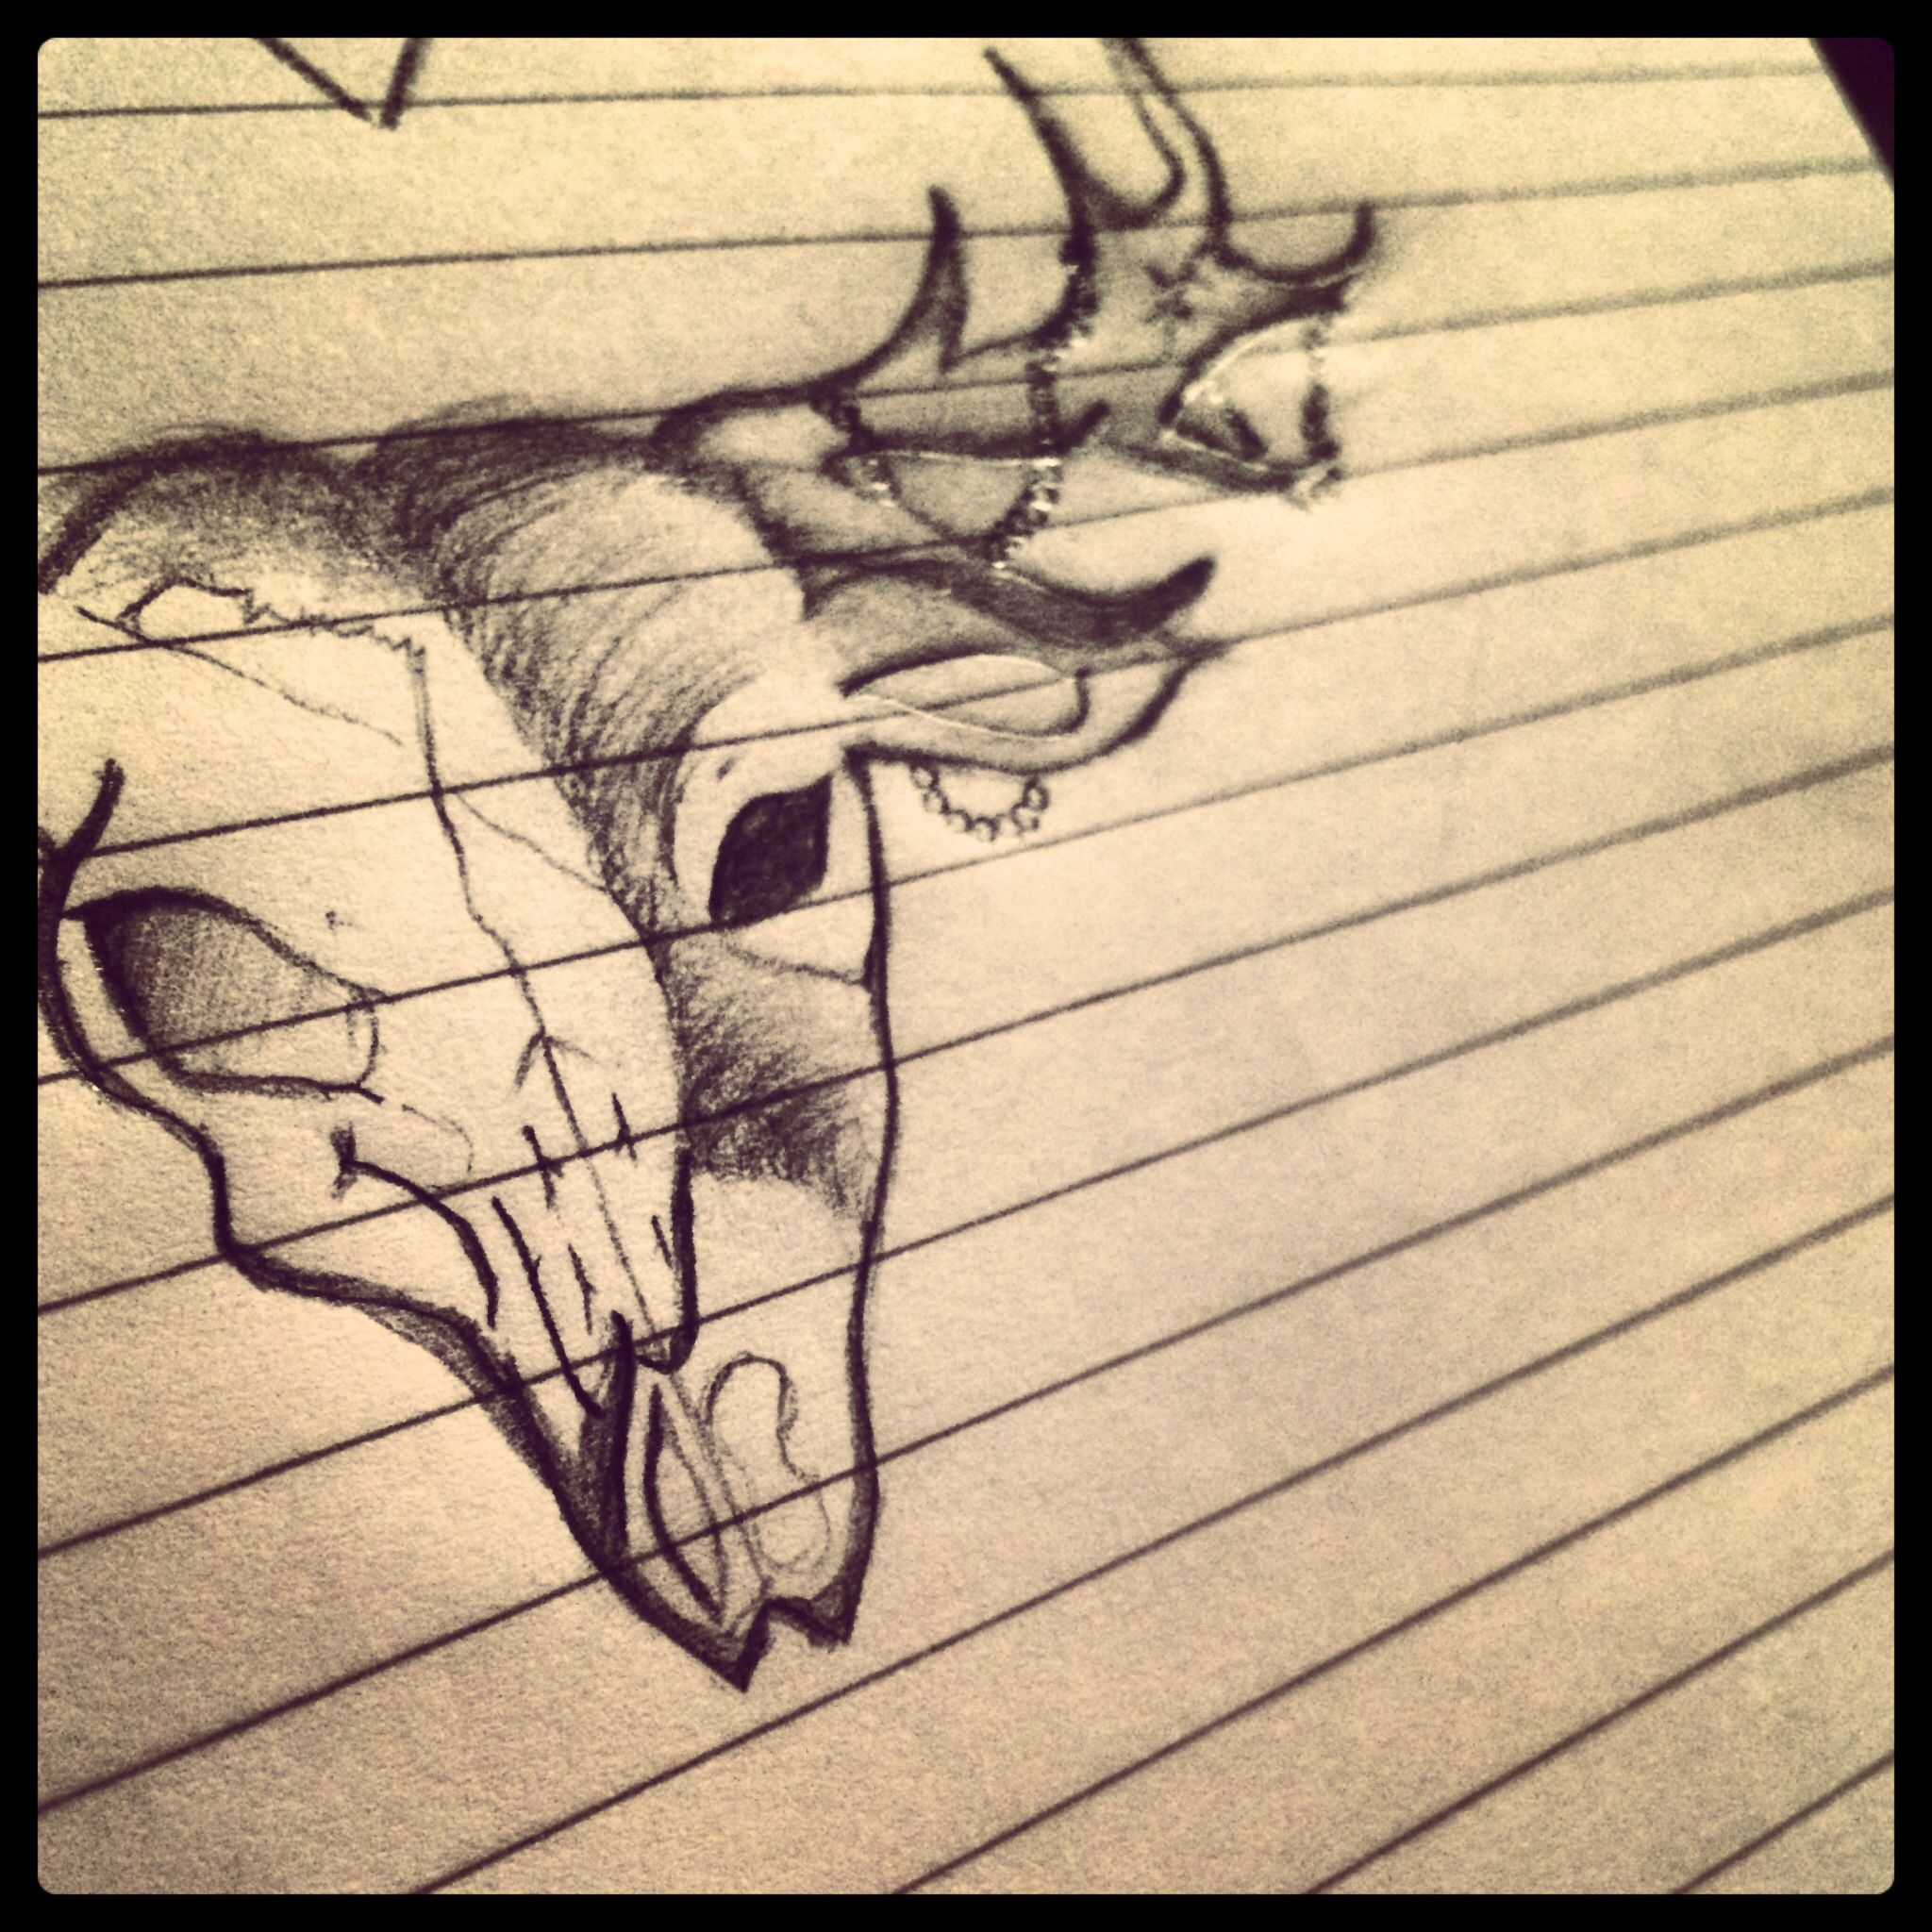 Just a little drawing :)